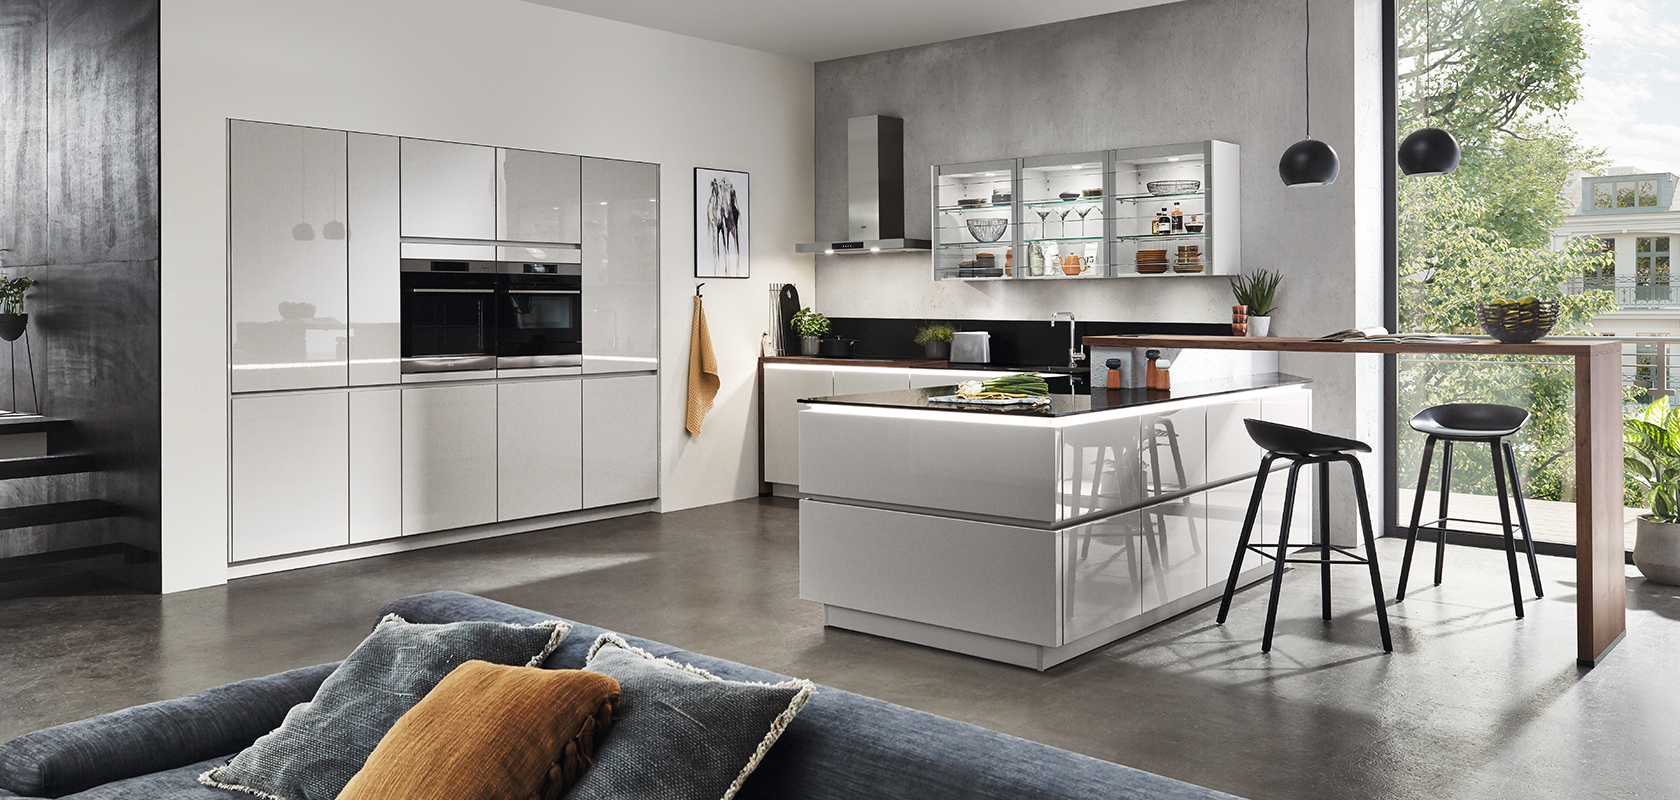 other decoration designer ideas designs use lighting kitchens or adorable geometry modern that of kitchen observatoriosancalixto best unconventional concept